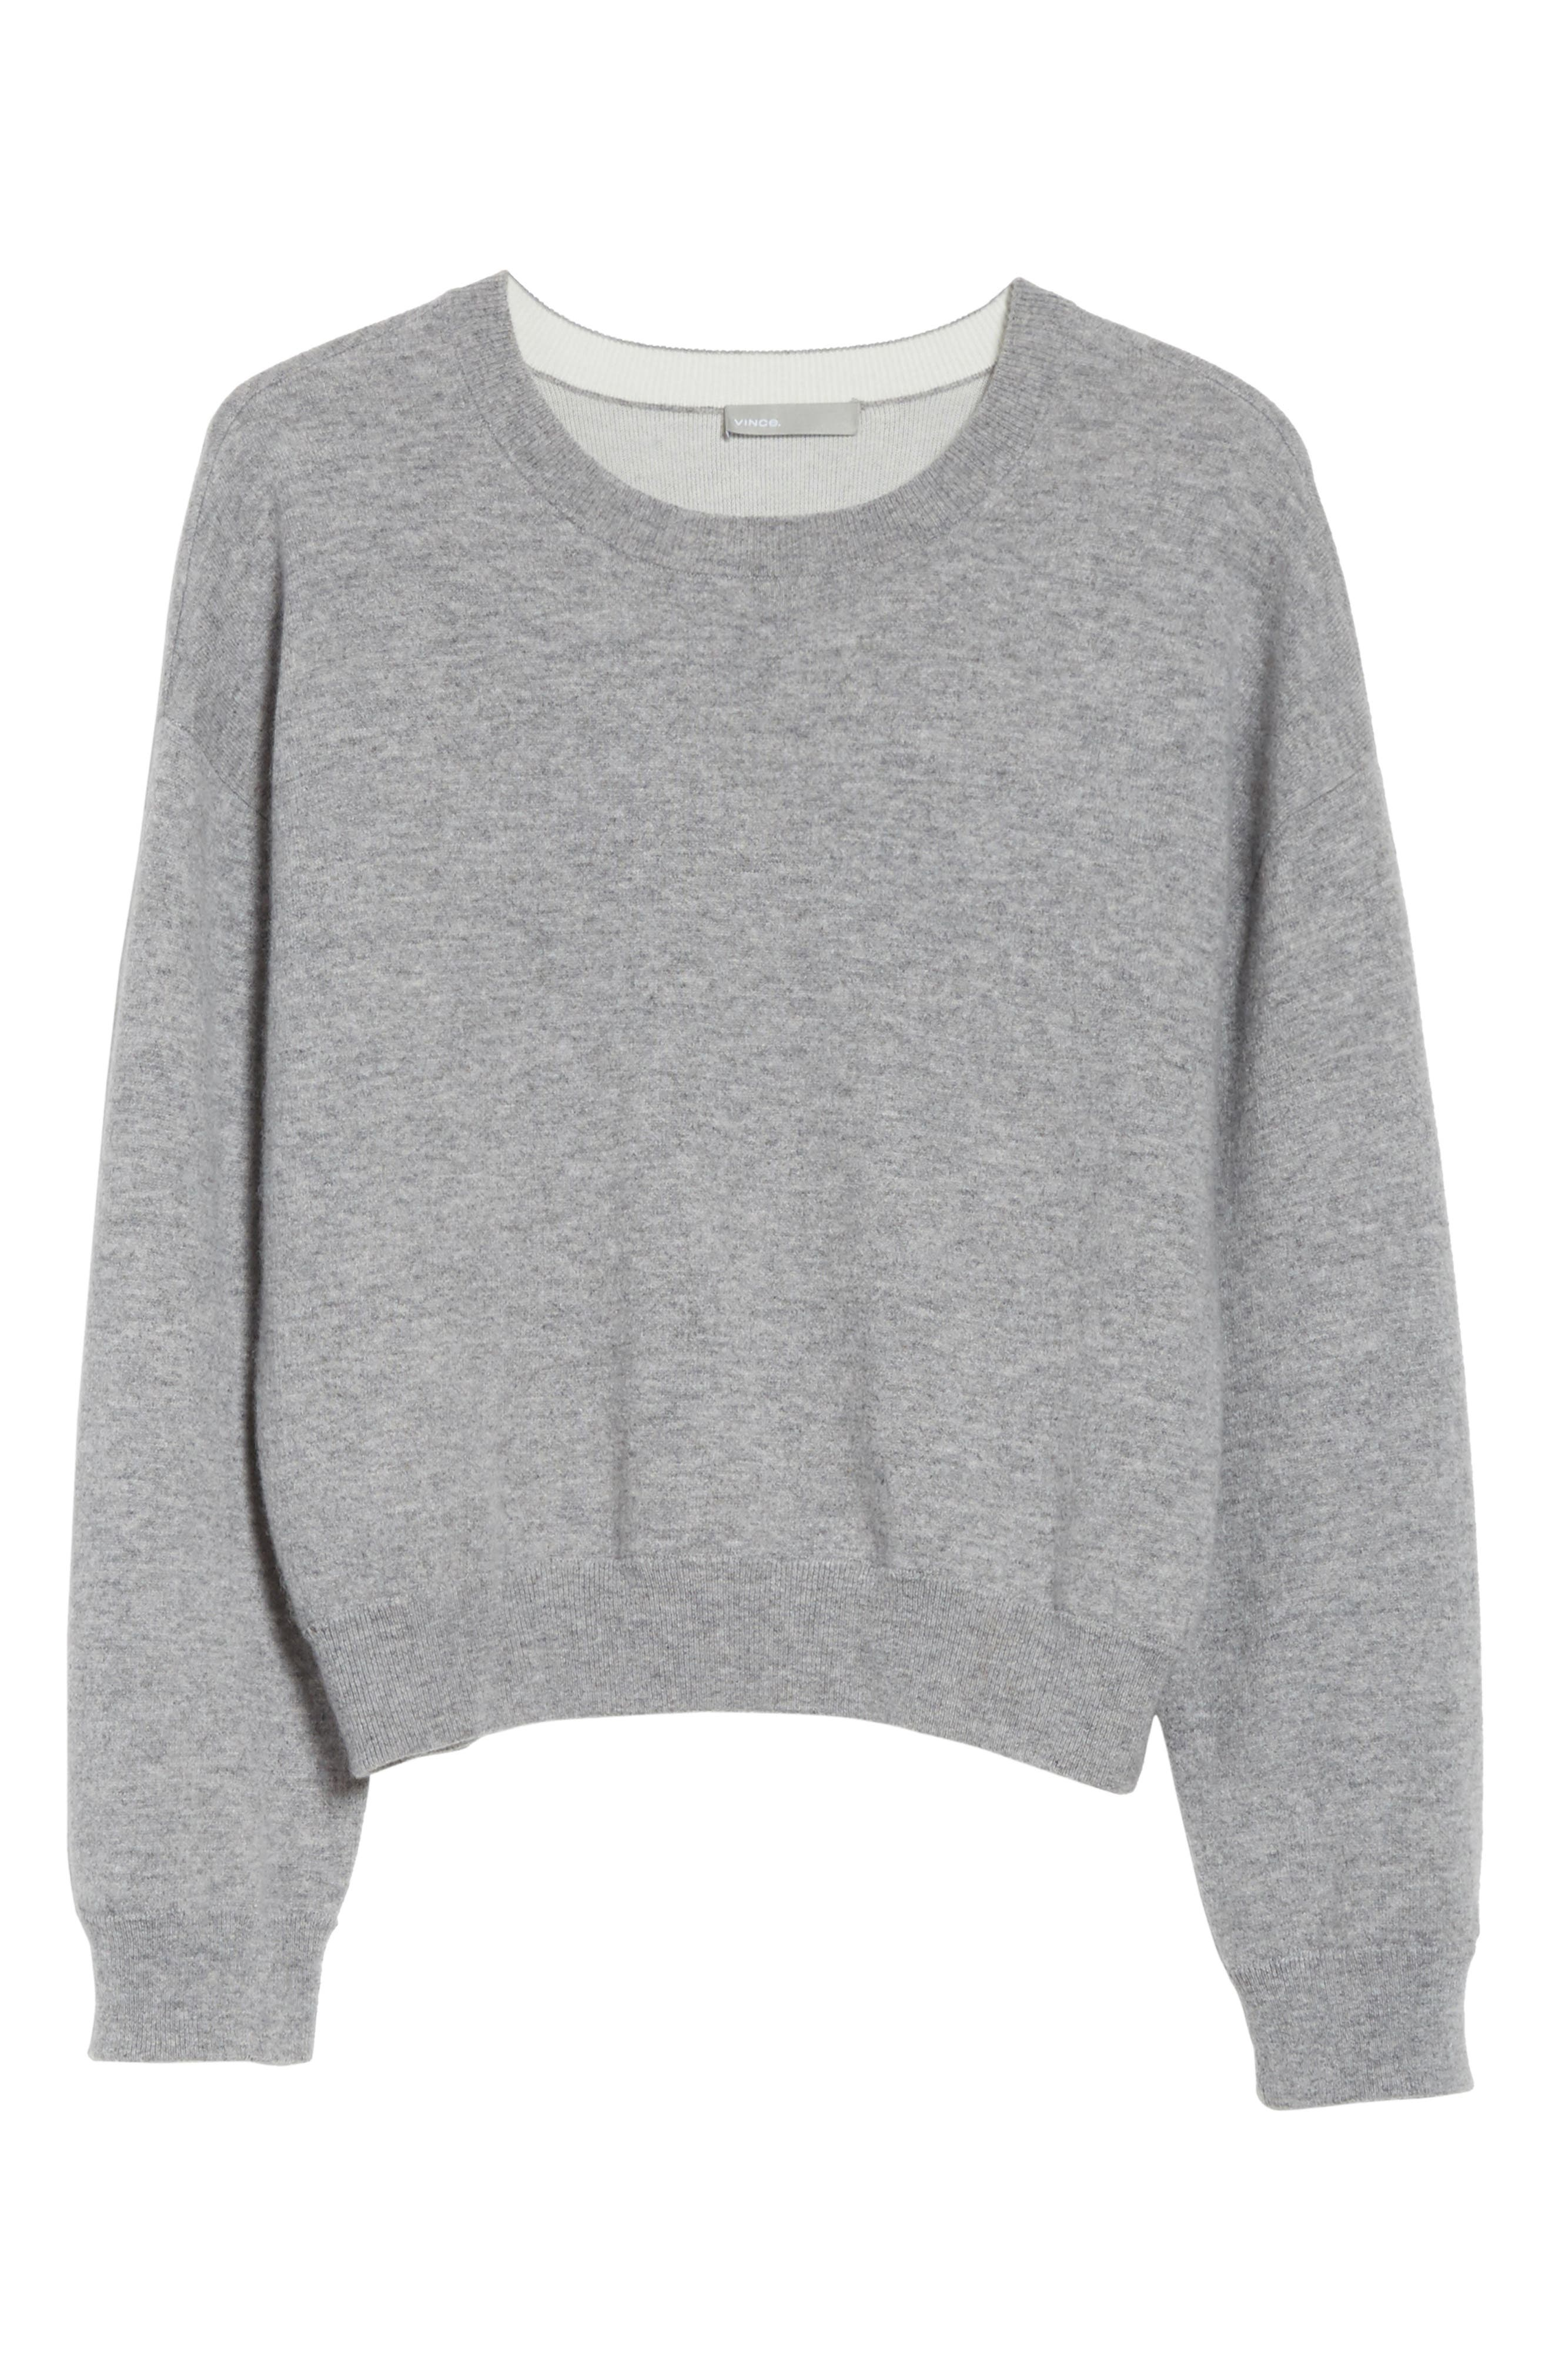 Double Layer Cashmere & Cotton Sweater,                             Alternate thumbnail 6, color,                             081